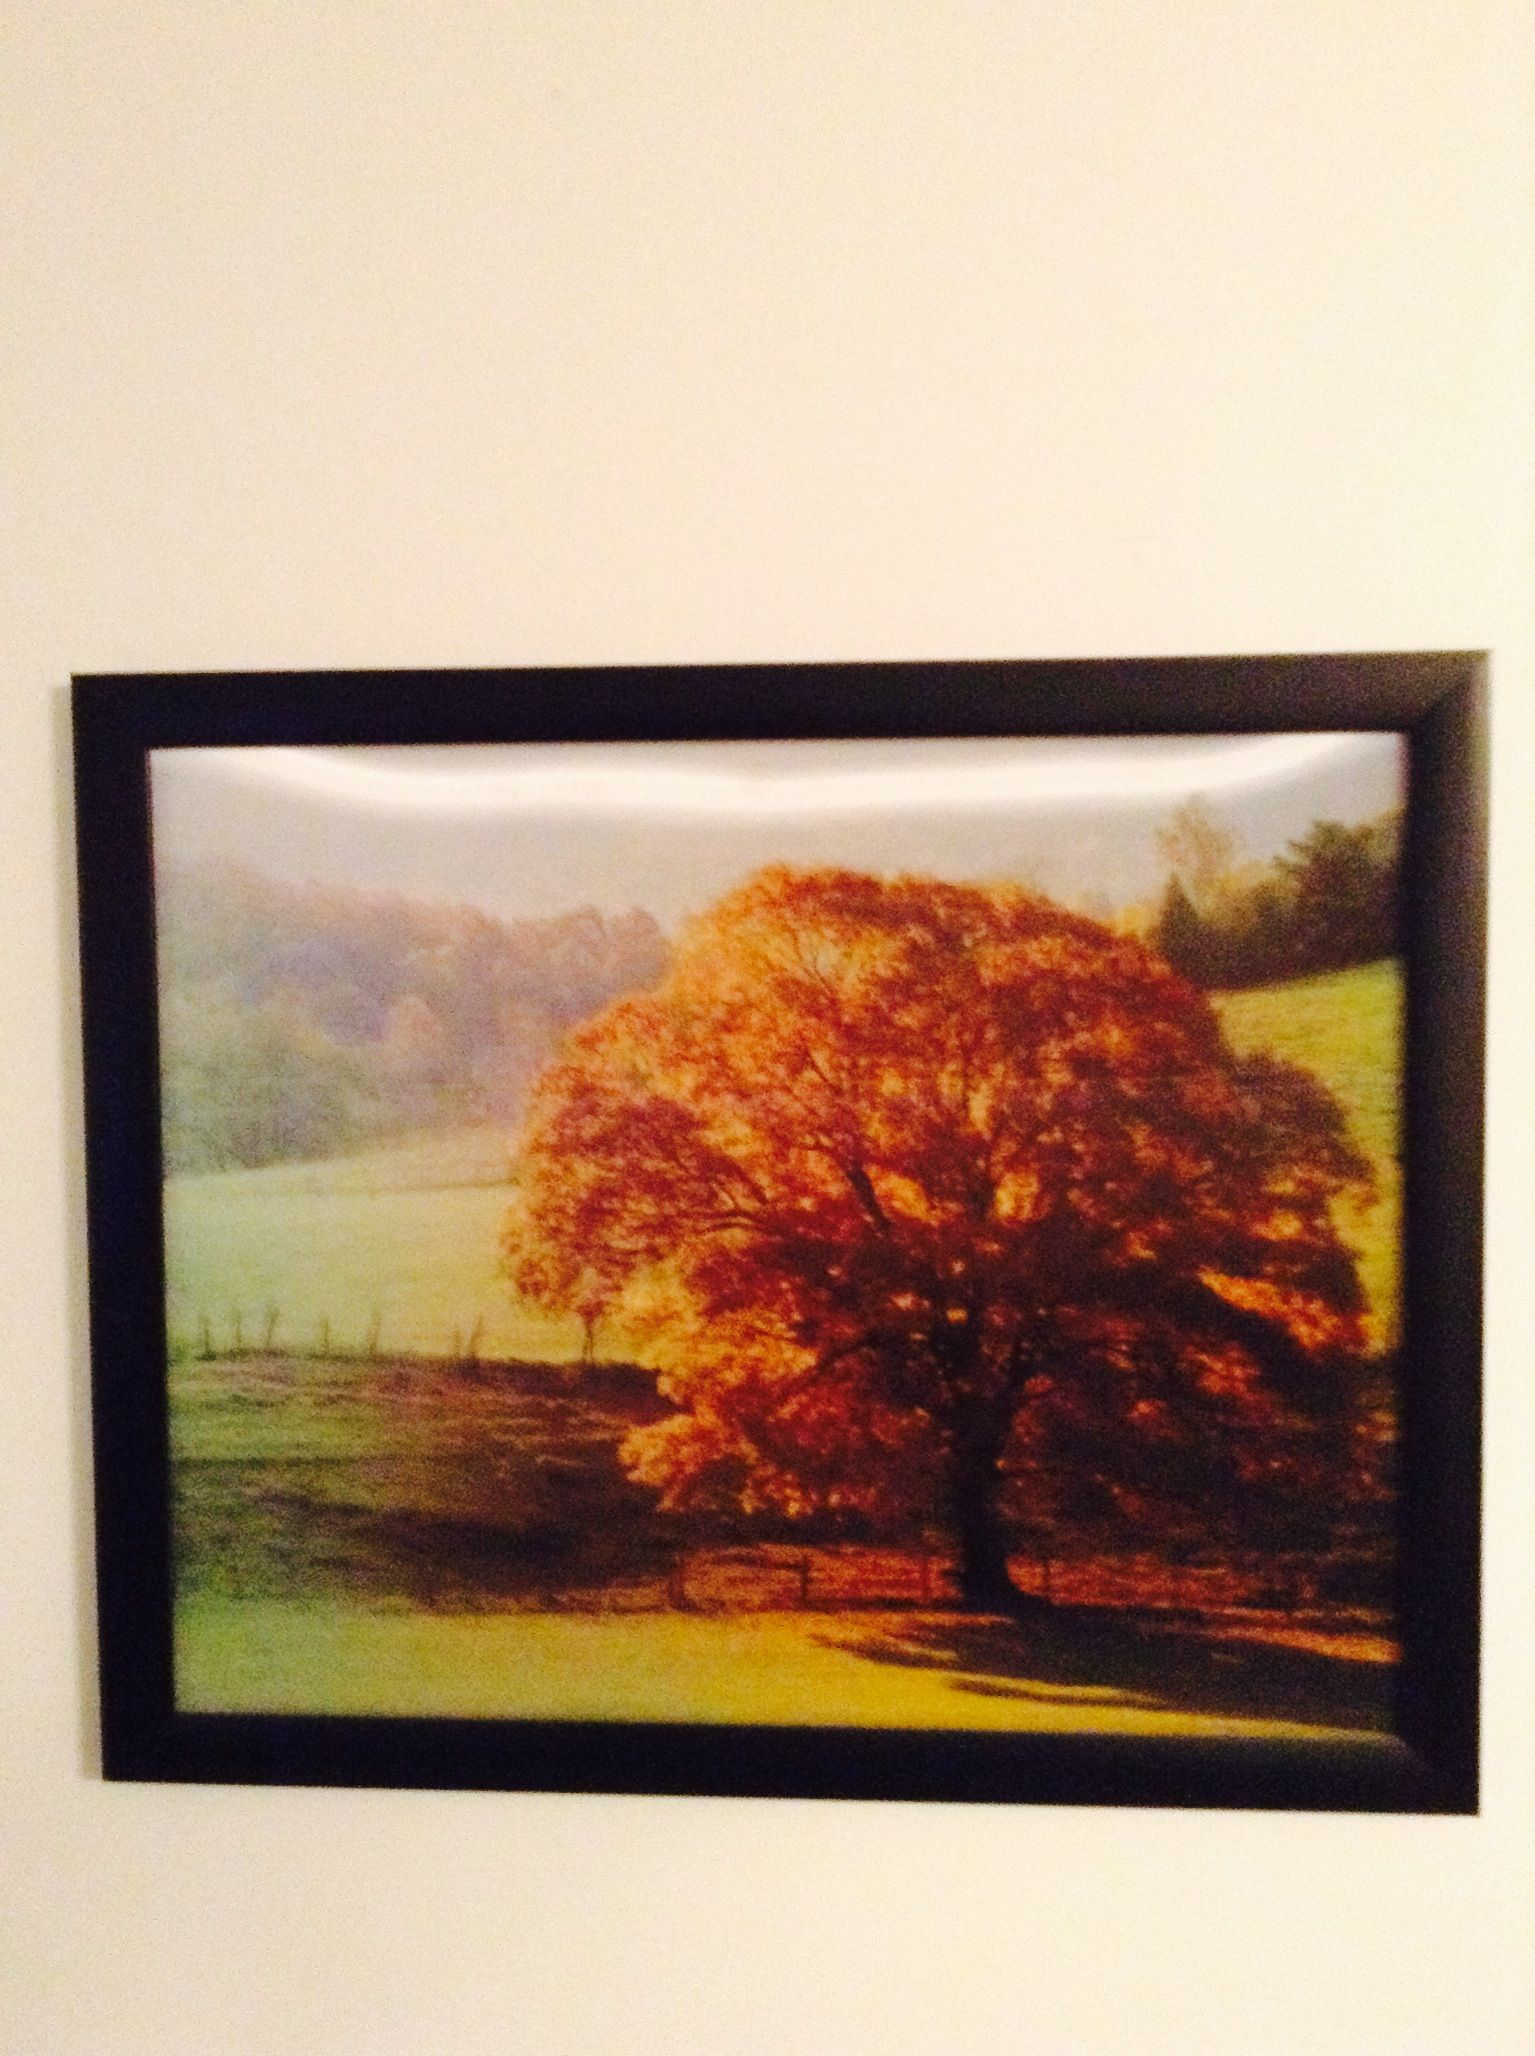 This One Is Like A Hologram You Move A Certain Way It Seasons Change Too Optical Illusions Changing Seasons Artwork